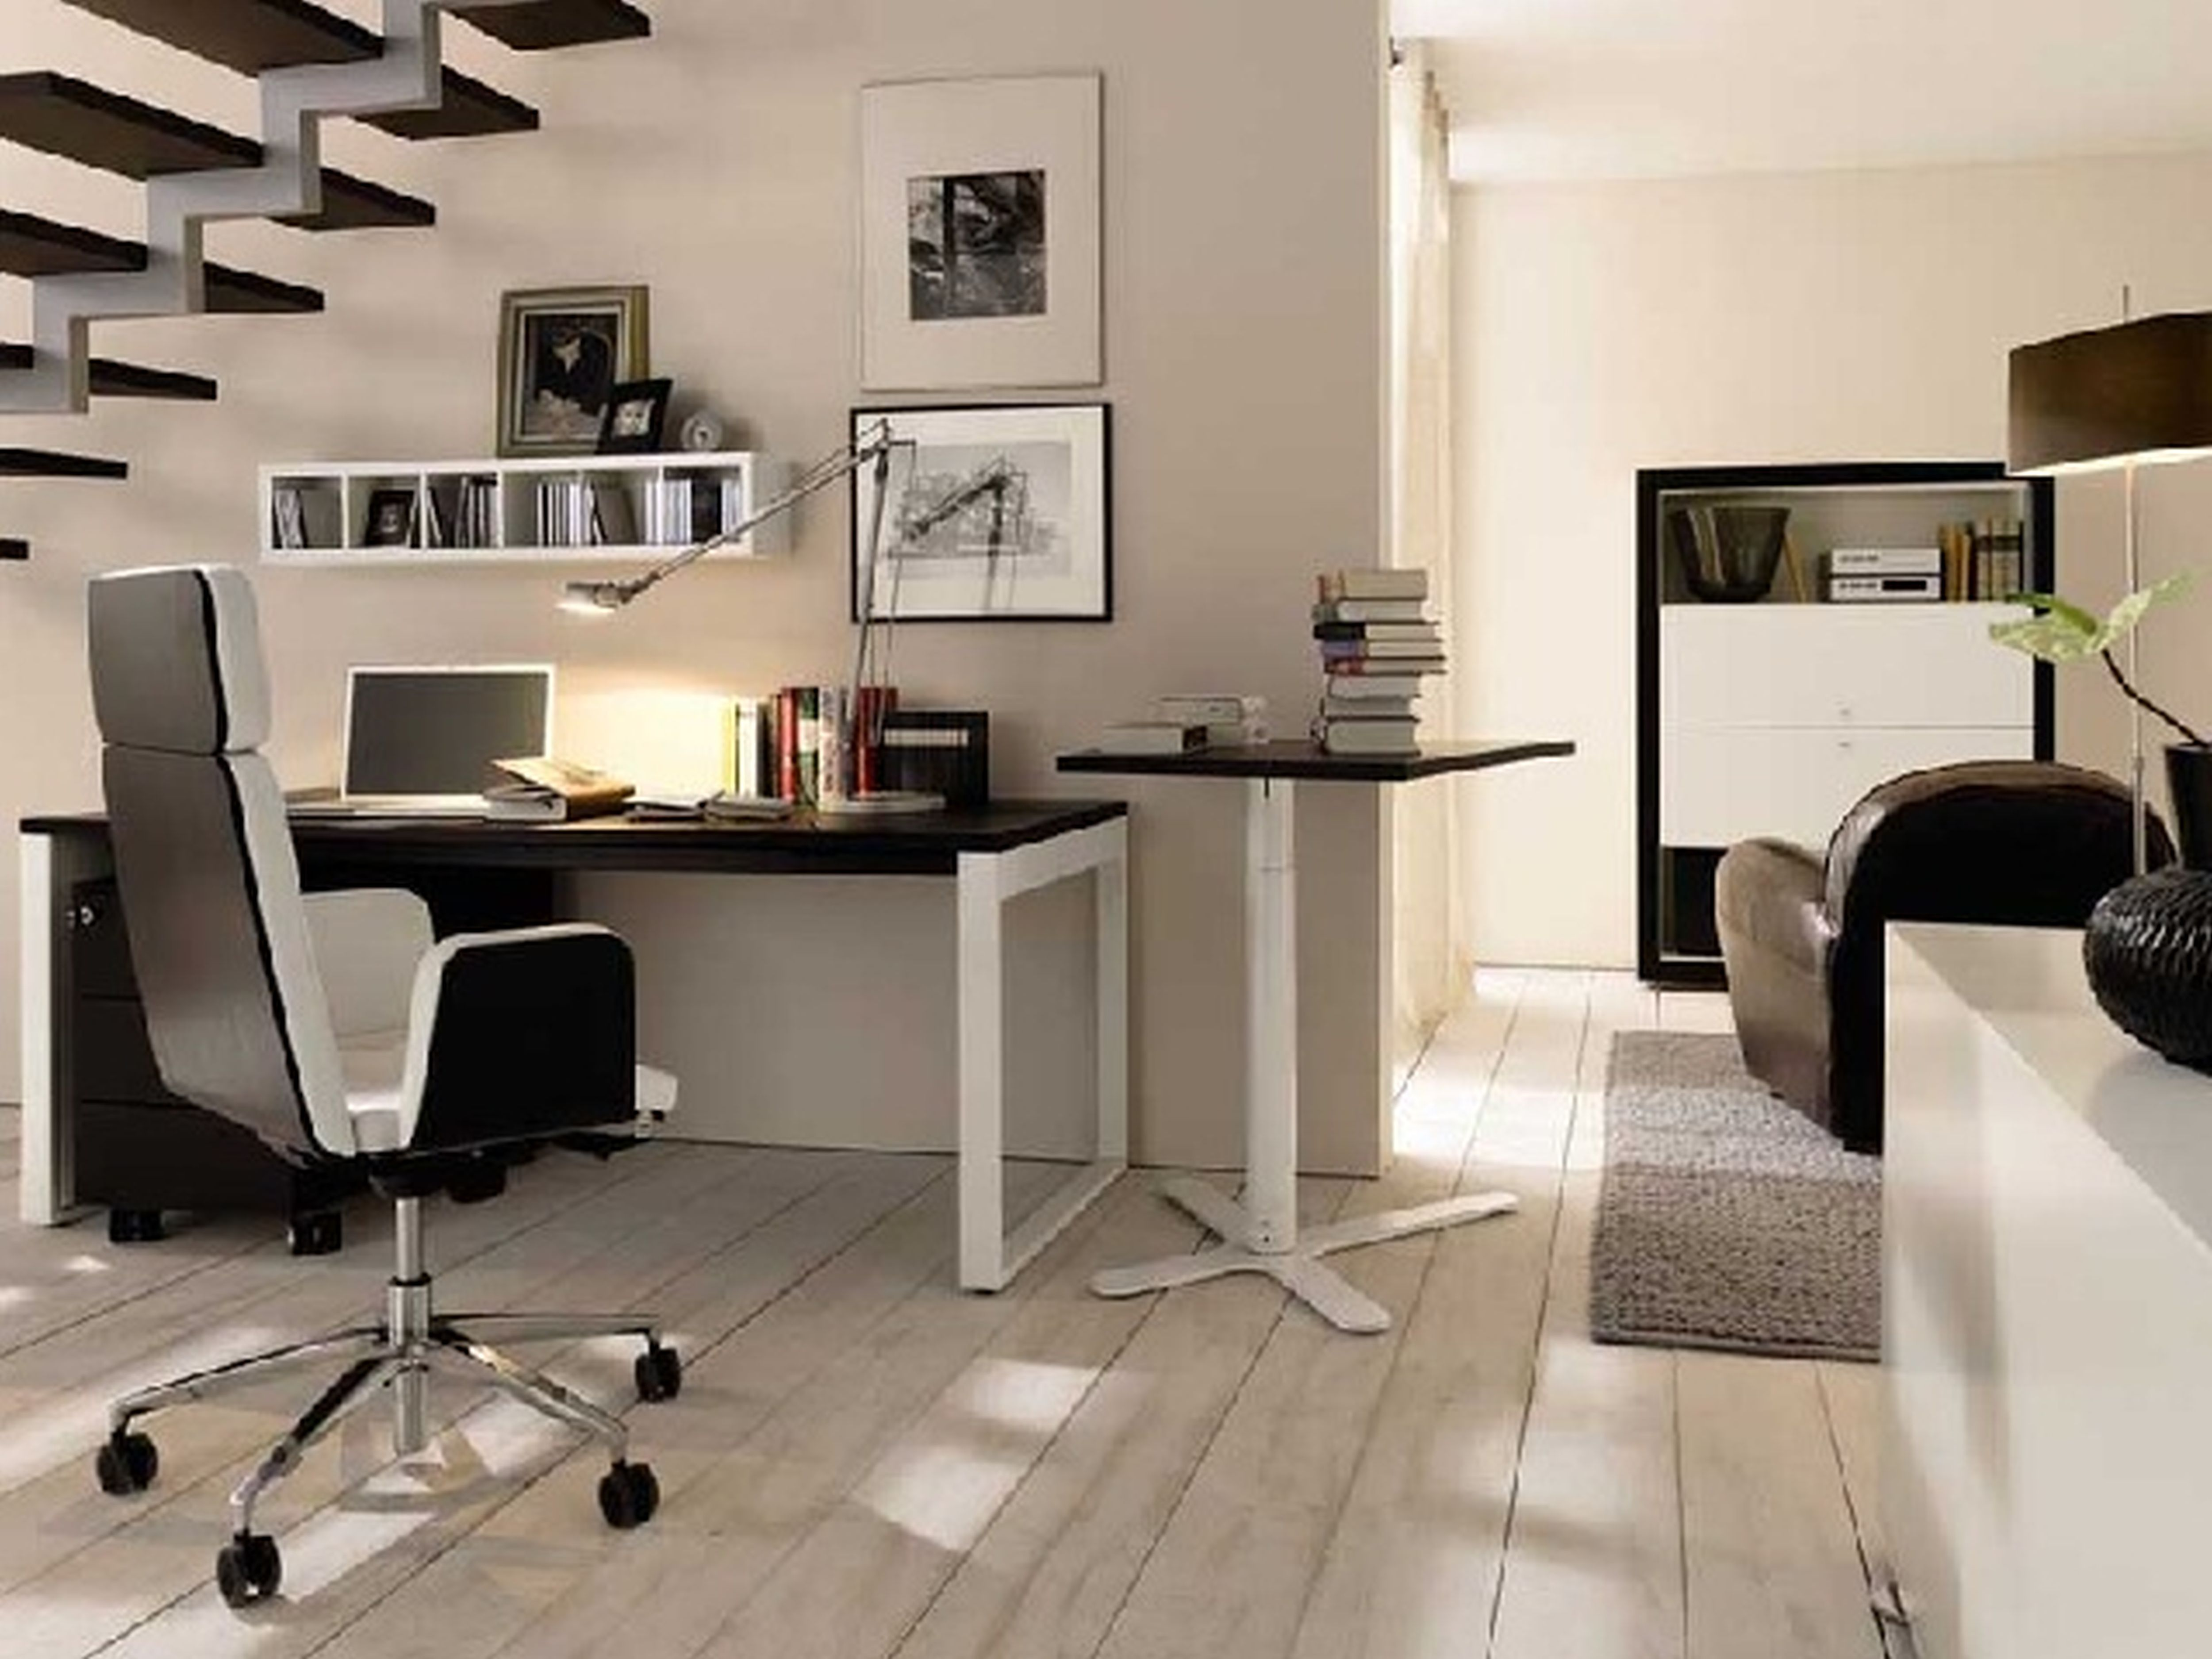 Charming Contemporary Office Decorating Ideas Of Ideascontemporary Design Under Stair For Small E Acnn Decor